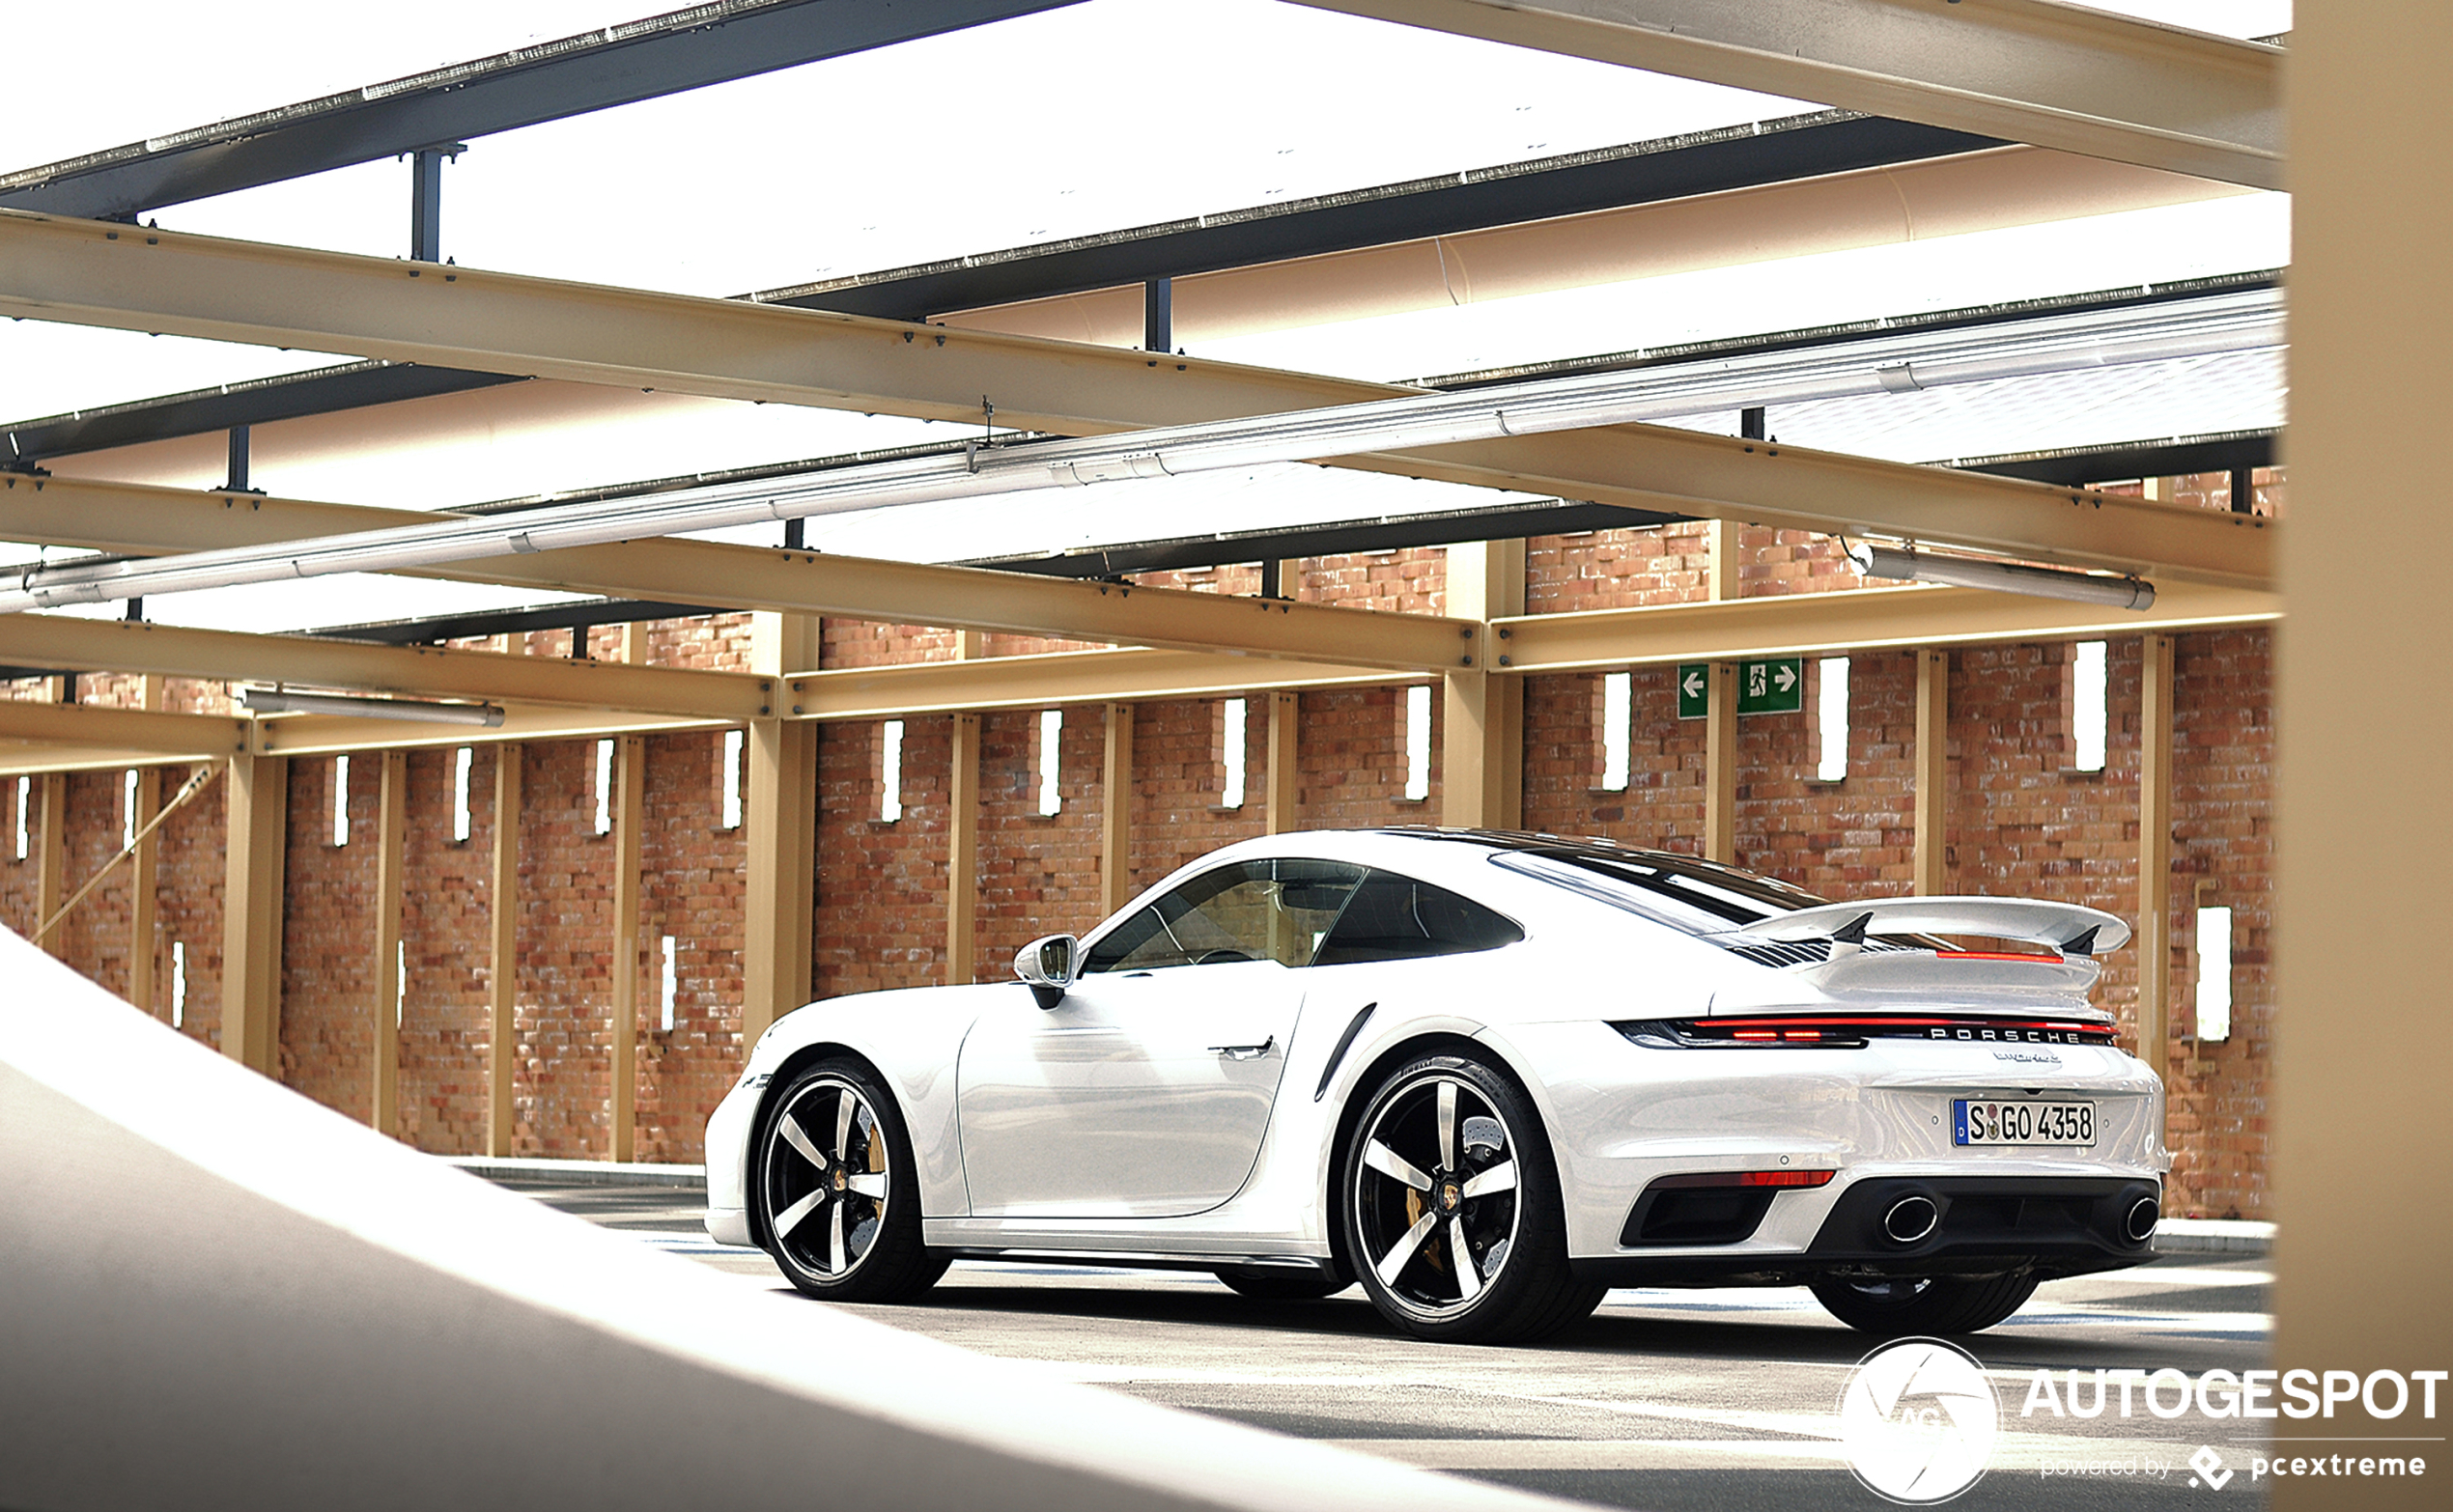 We can add the Coupé to the site: Porsche 992 Turbo